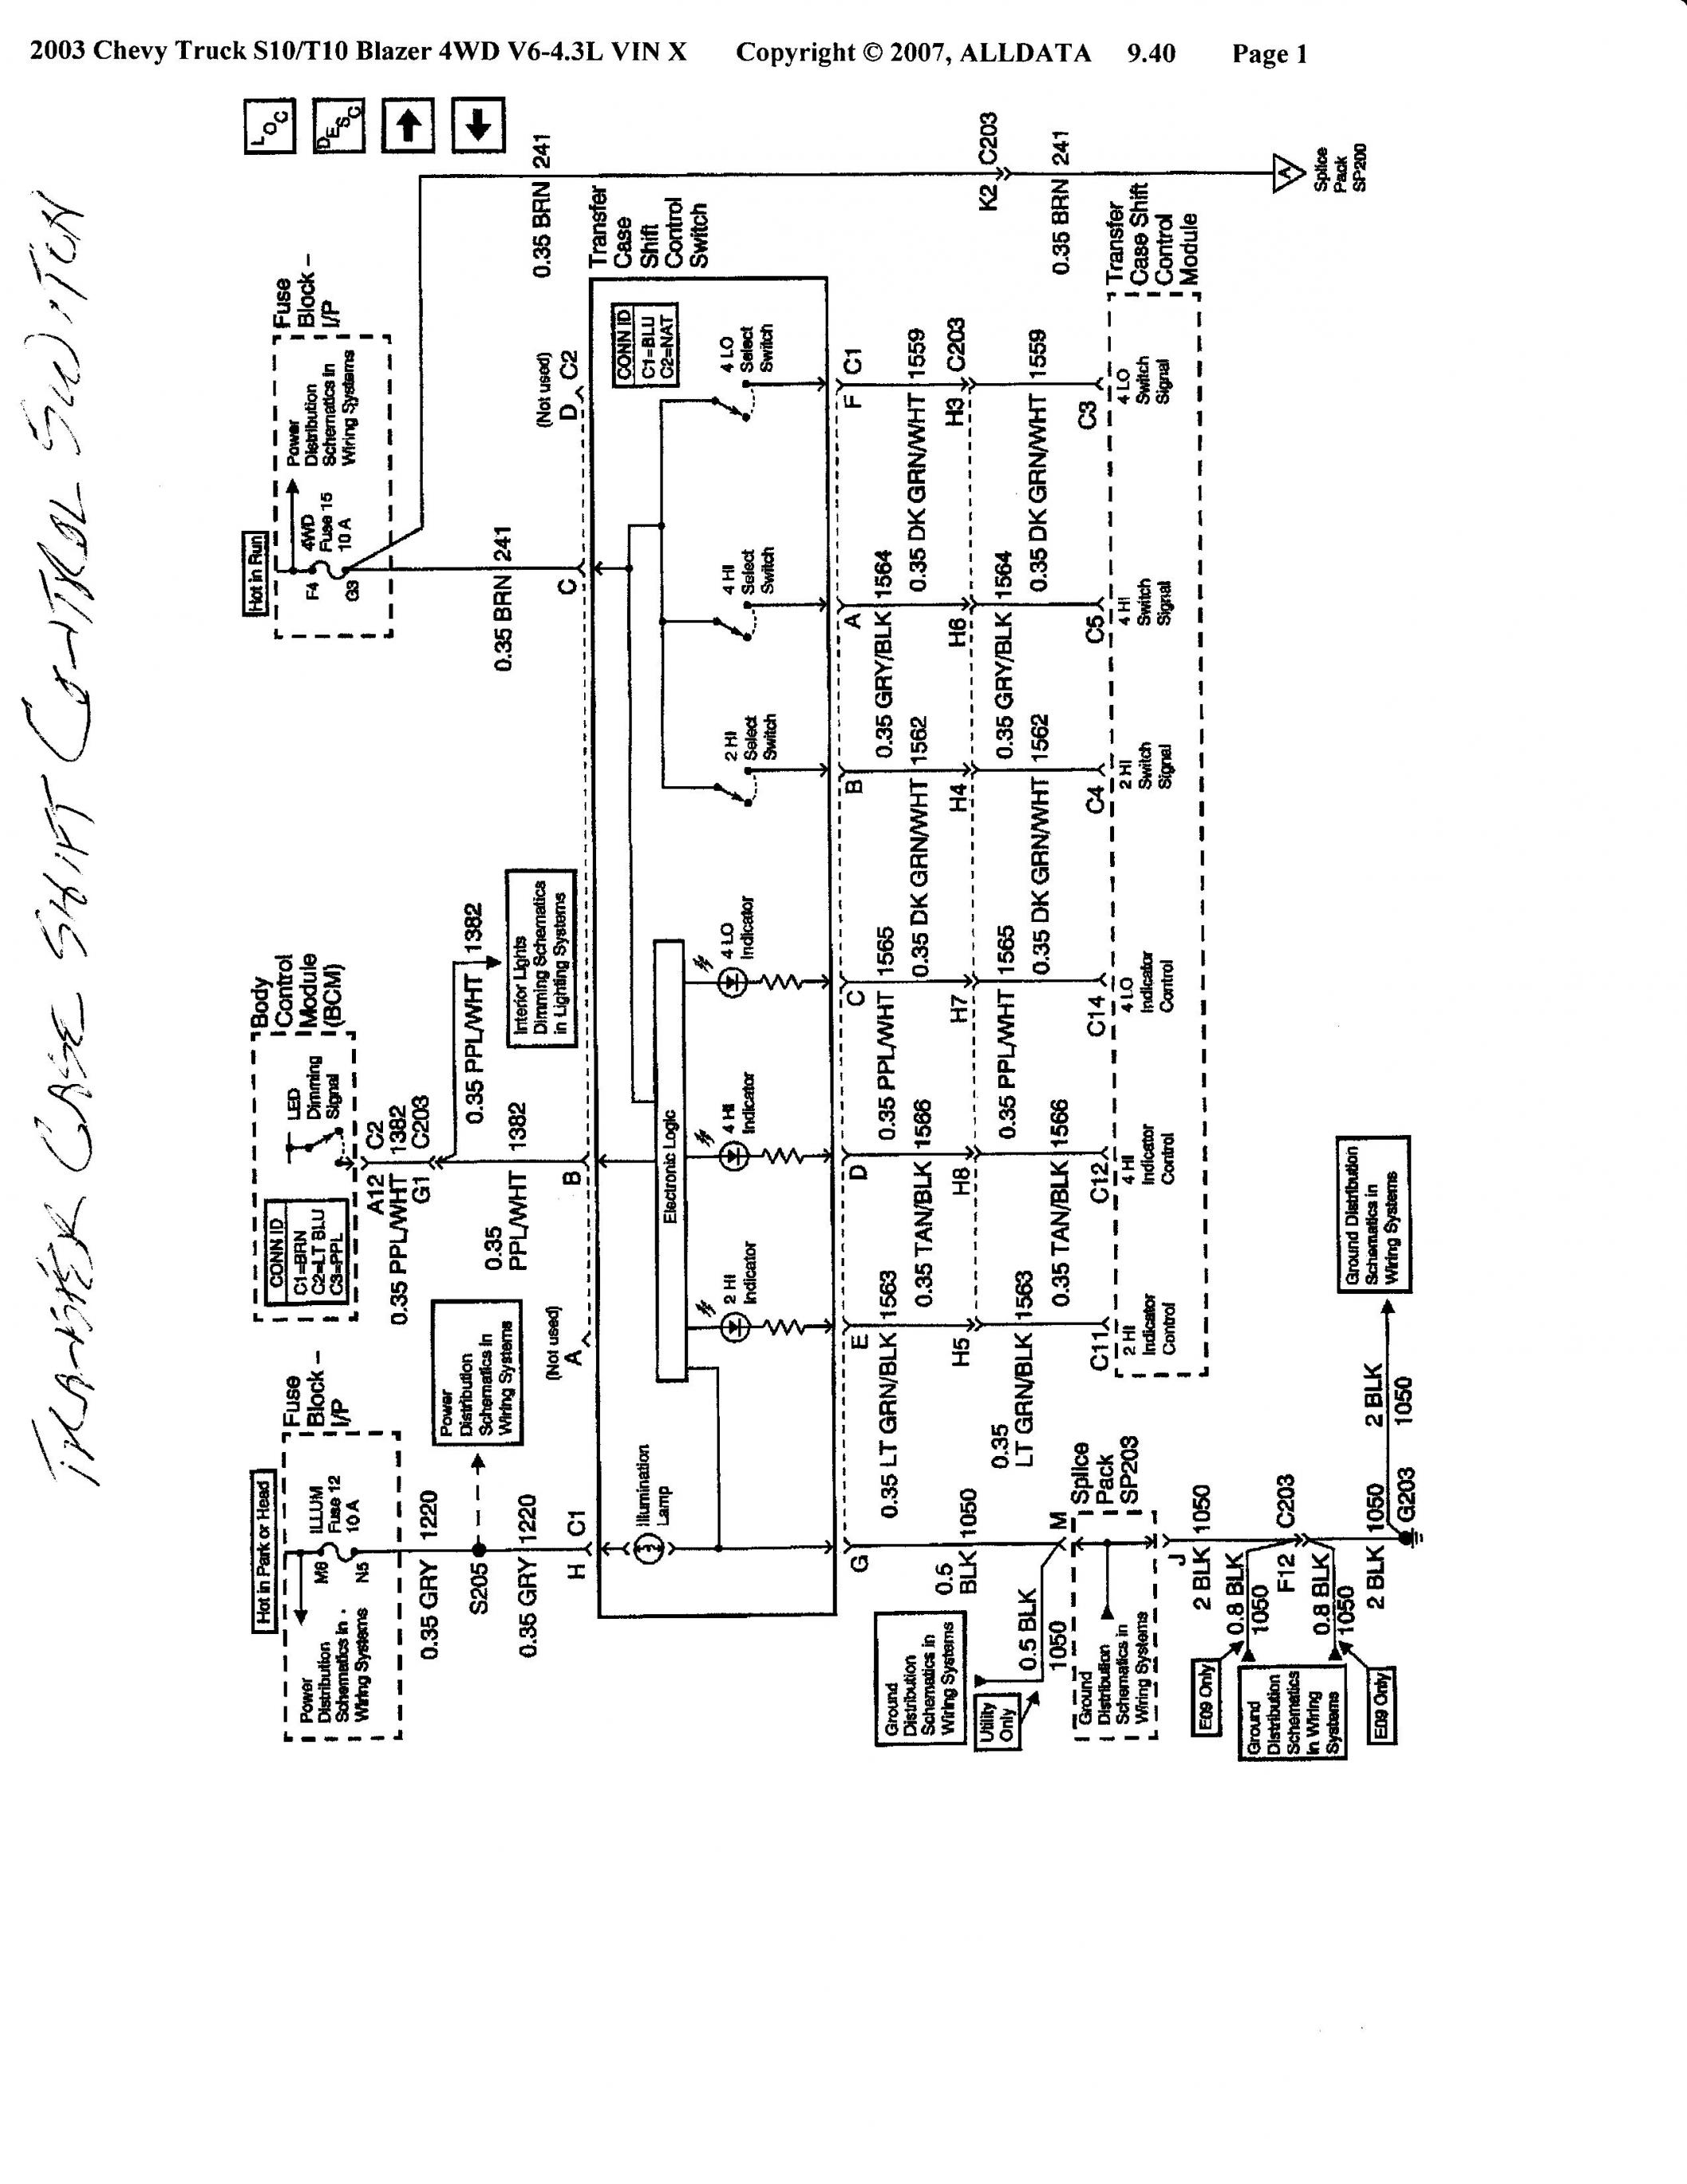 1972 Chevelle Horn Relay Wiring Diagram as well 1966 Ford Voltage Regulator Wiring Diagram besides Super Beetle Parts together with 72 Ford Steering Column Wiring Diagram also WK 113 72 73. on 72 vw beetle wiring diagram